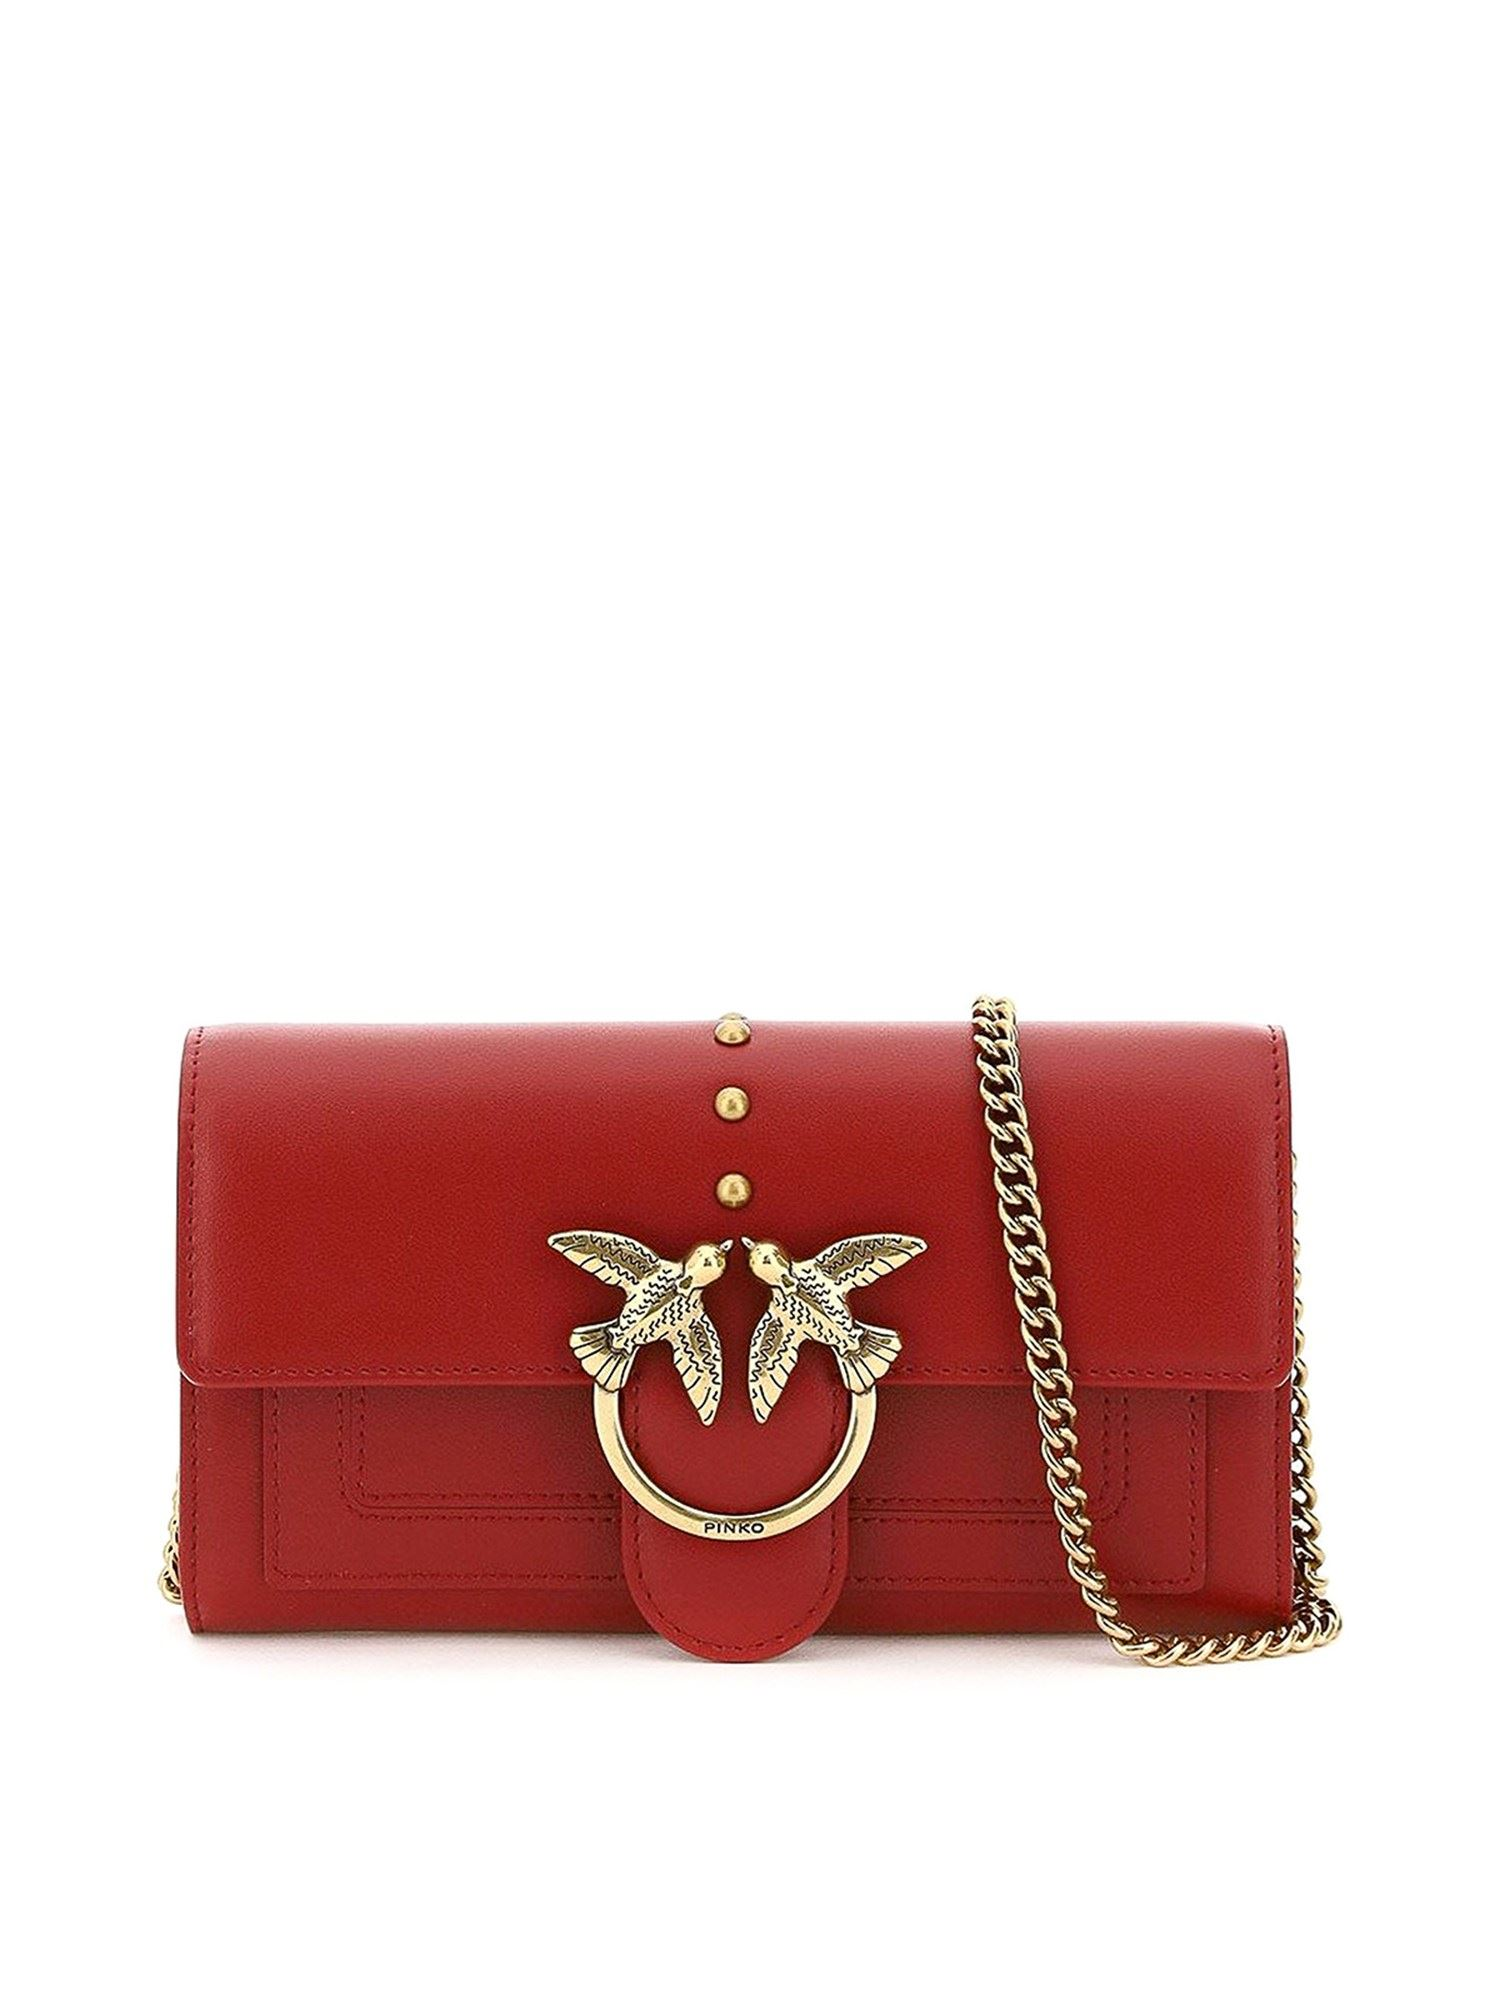 Pinko PINKO LOVE SIMPLY WALLET IN RED